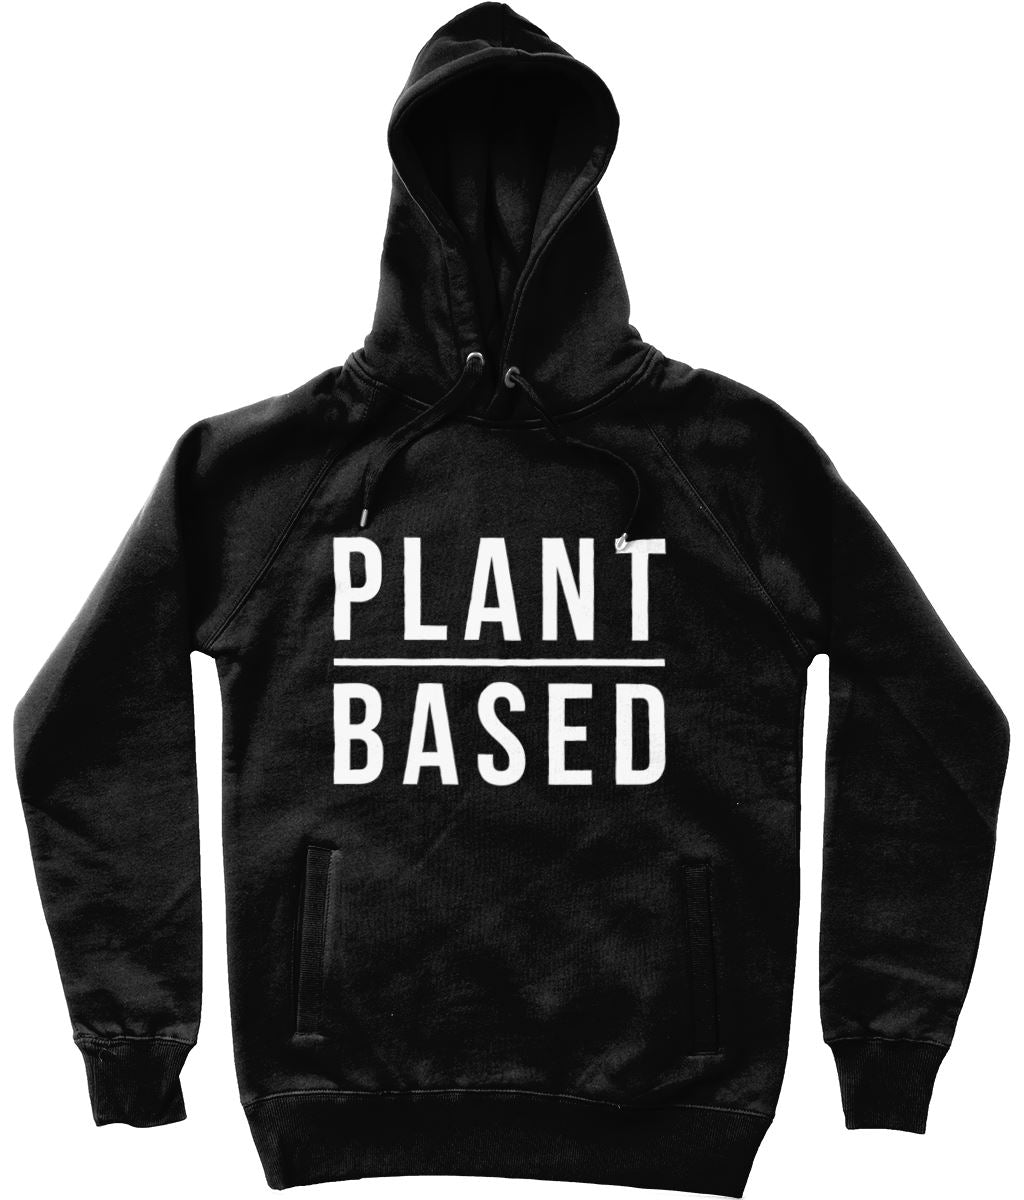 """Plant Based"" Vegan Hoodie - 100% Organic Cotton (Unisex) Clothing Vegan Original Black X-Small"